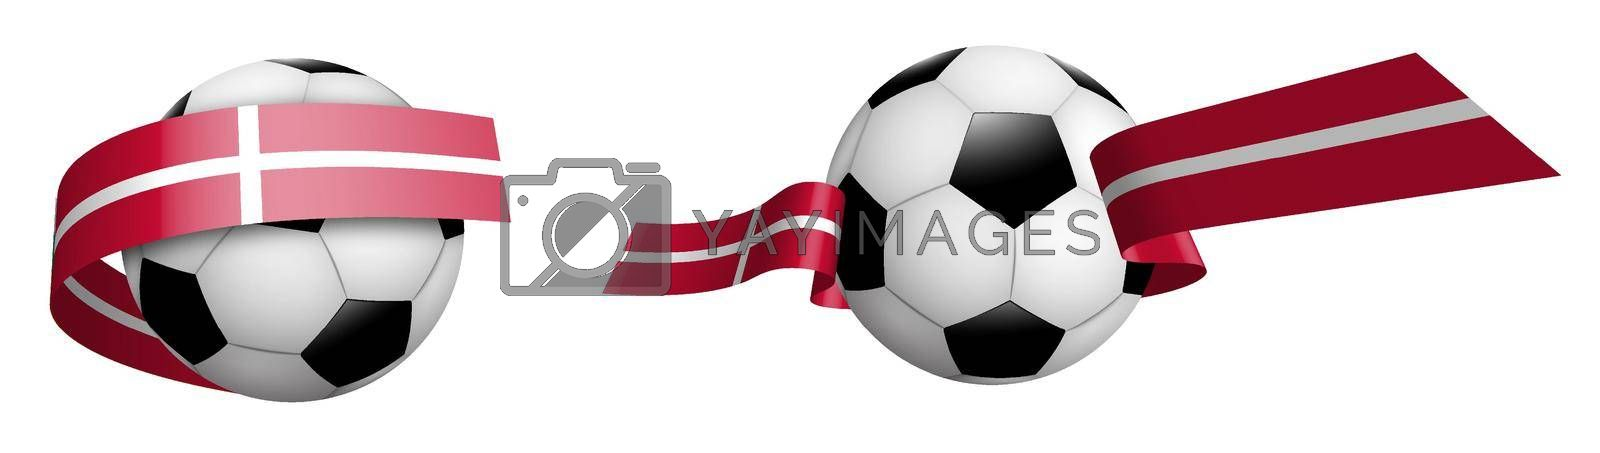 balls for soccer, classic football in ribbons with colors of Denmark flag. Design element for football competitions. Denmark national team. Isolated vector on white background